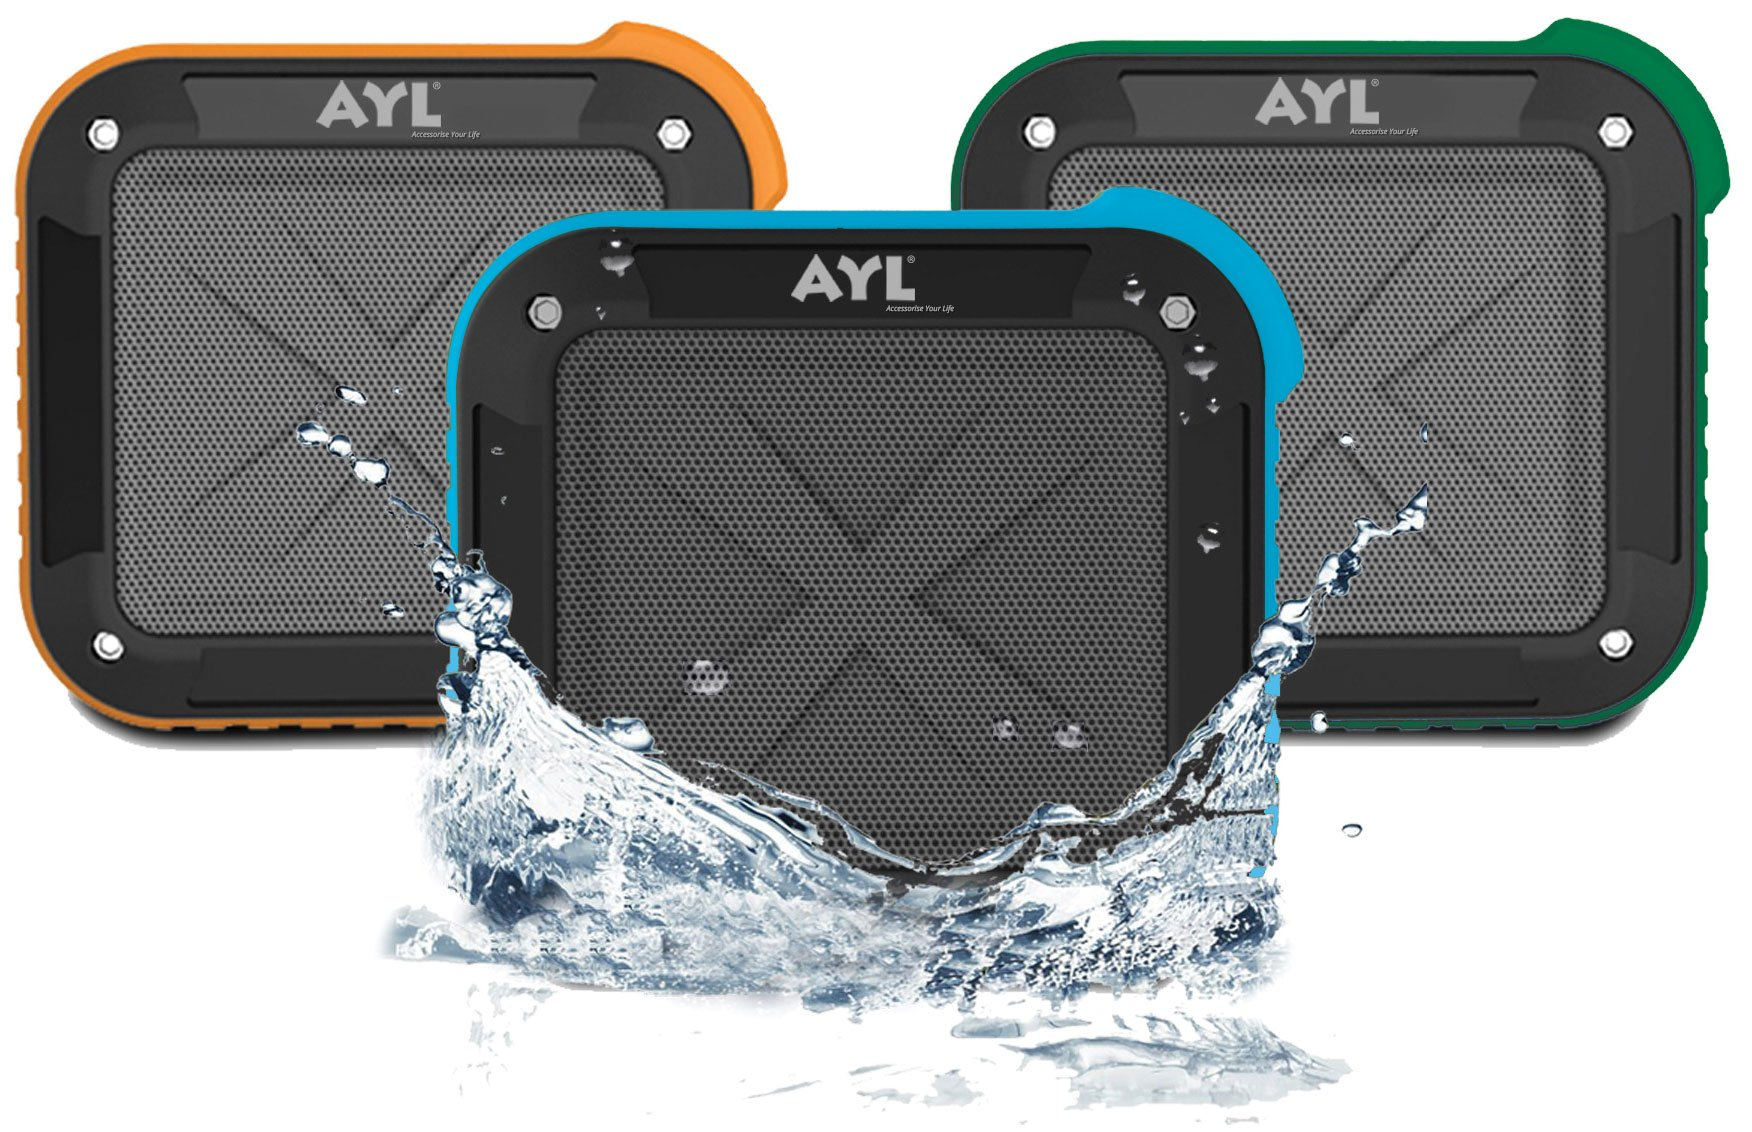 Portable Outdoor and Shower Bluetooth 4.1 Speaker by AYL SoundFit, Water Resistant, Wireless with 10 Hour Rechargeable Battery Life, Powerful Audio Driver, Pairs with All Bluetooth Device (Ocean Blue) by AYL (Image #2)